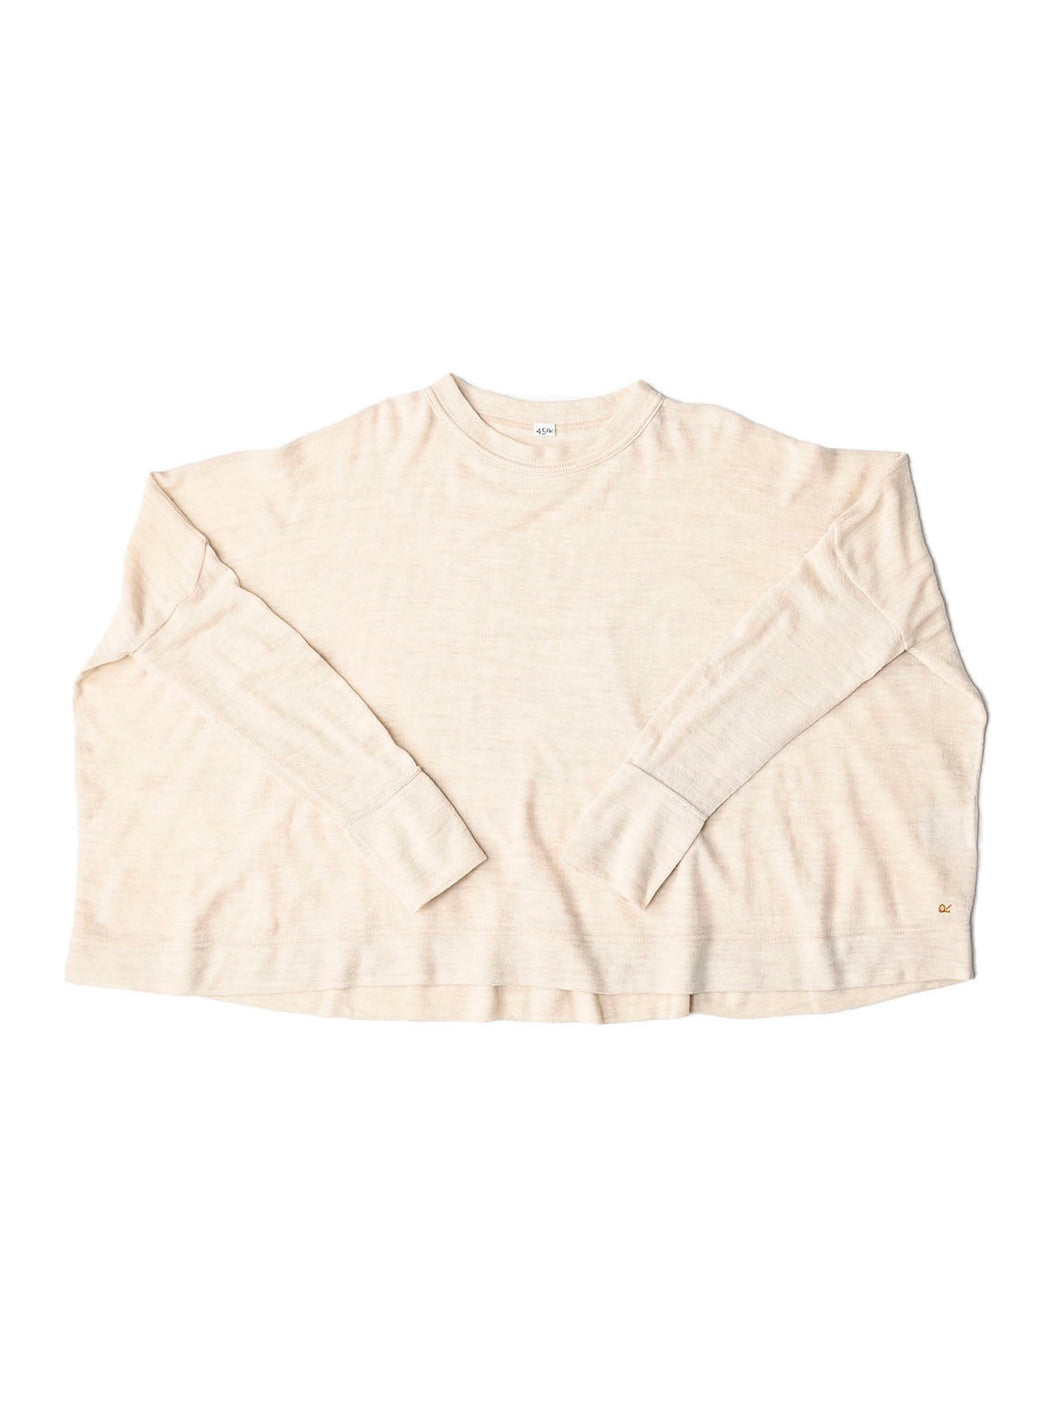 Camellia Wool Knit Sew Big T-shirt Sweater in beige